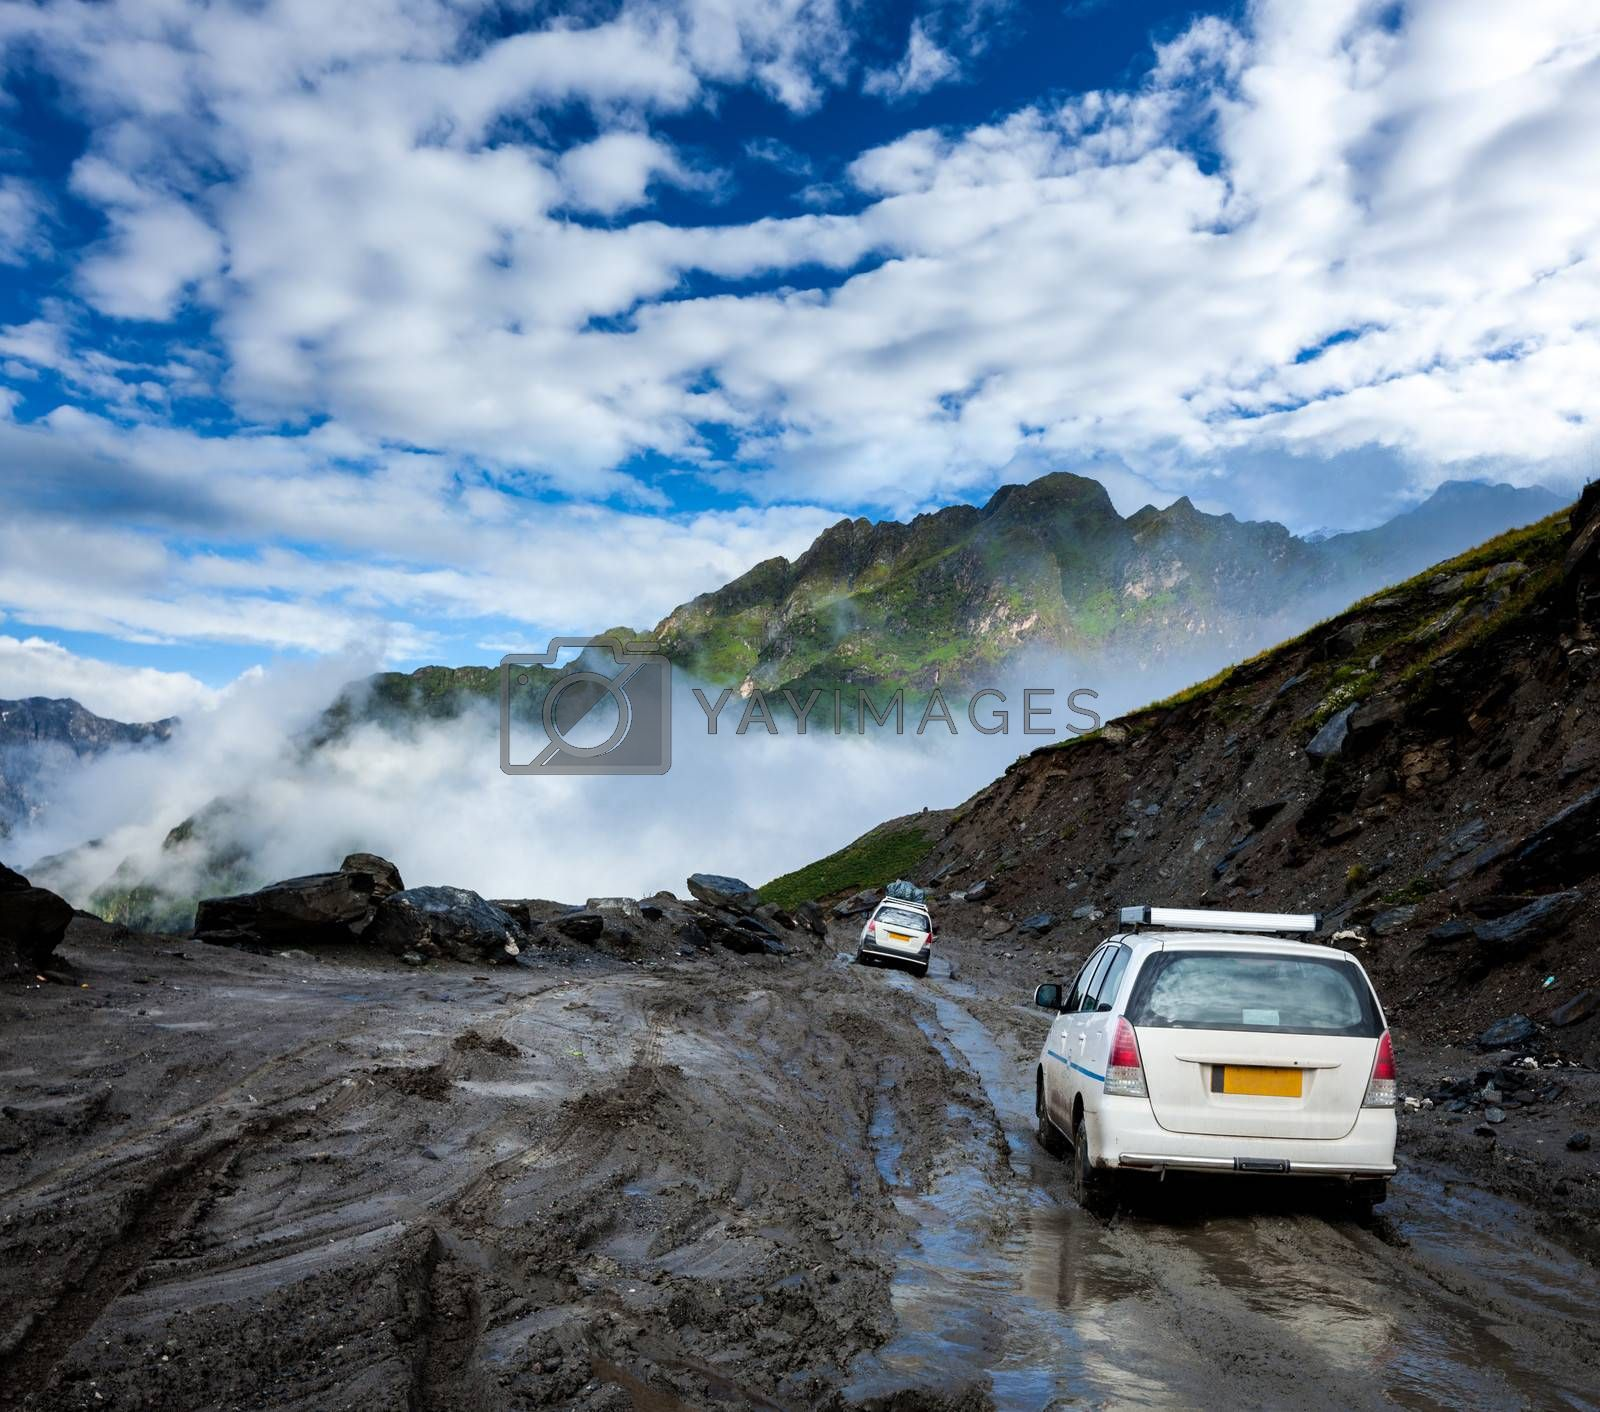 Royalty free image of Vehicles on bad road in Himalayas by dimol